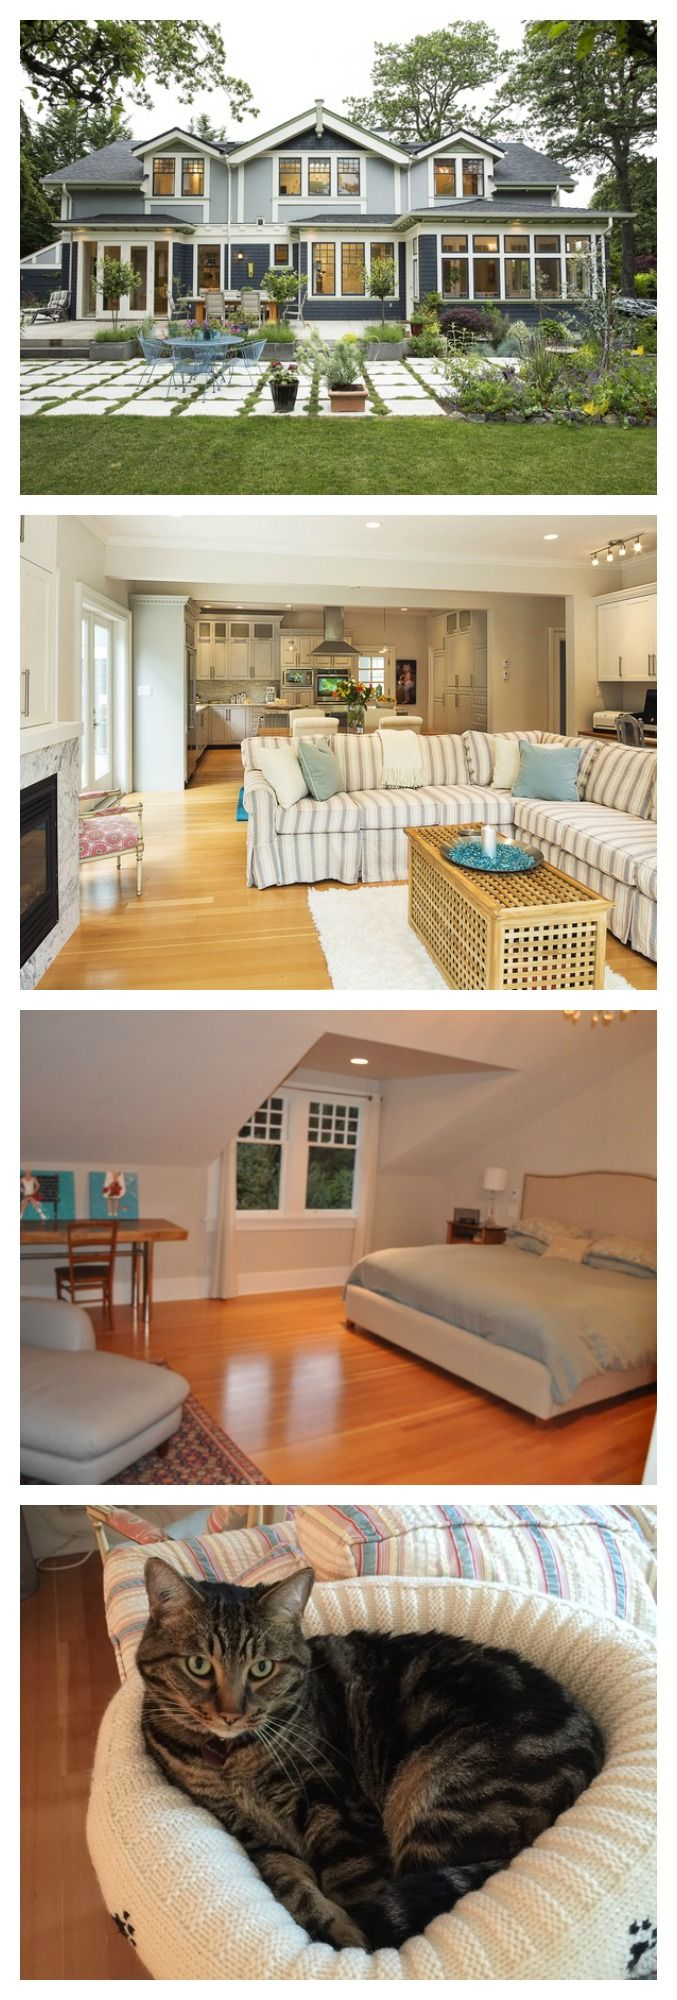 Spend Christmas in this stunning luxury home in #Canada RENT-FREE! See more details here: http://www.travellingweasels.com/2015/04/house-sitting-opportunities.html #housesitting #budgettravel #luxurytravel